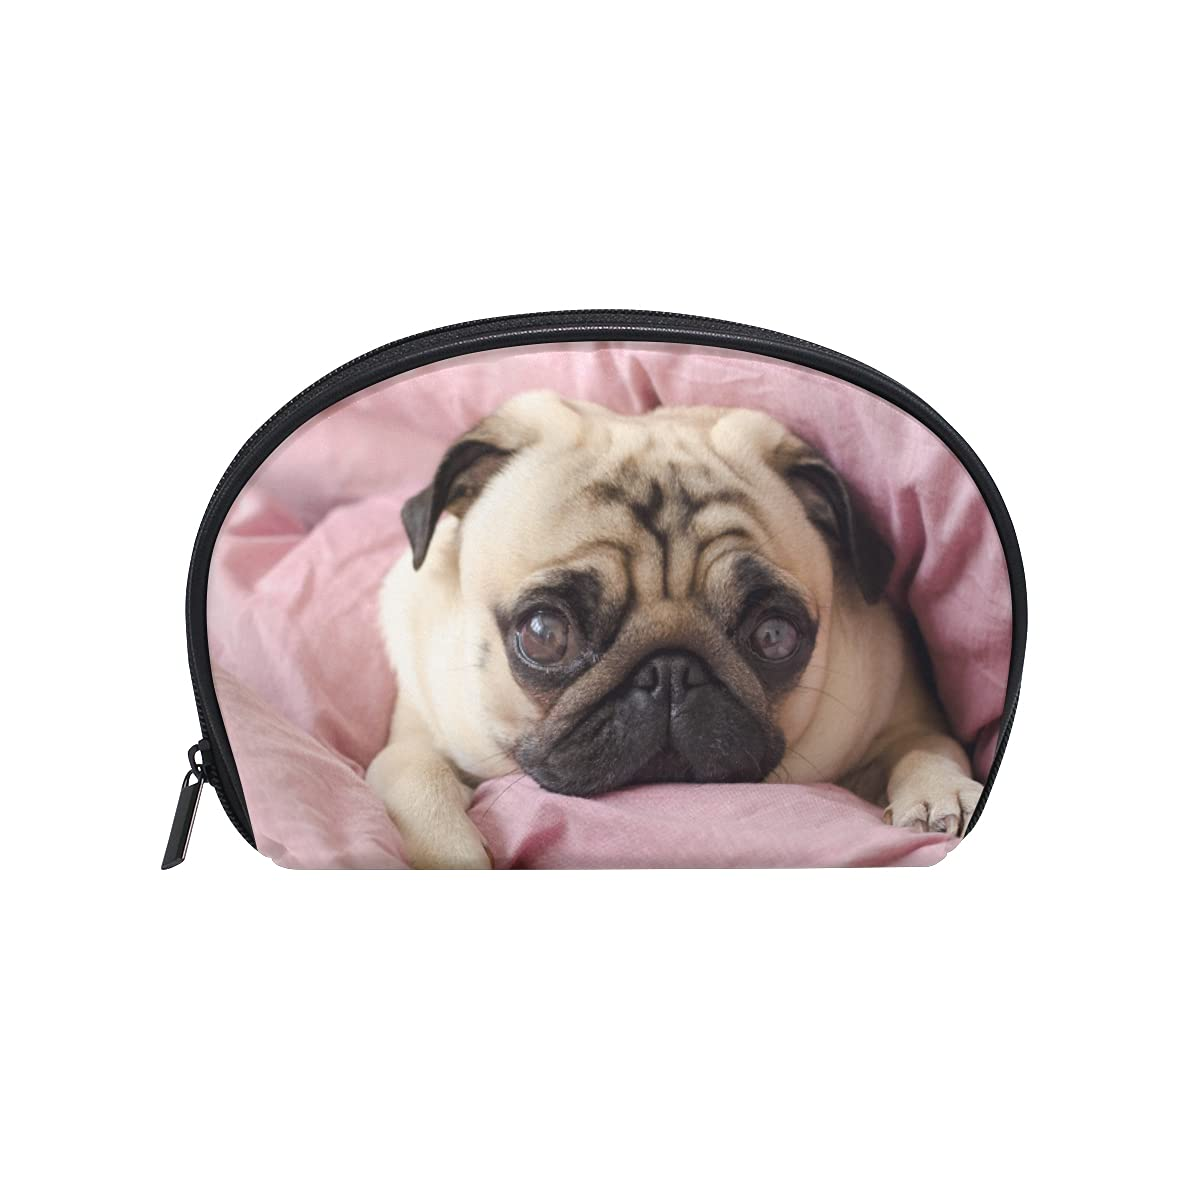 OTVEE Small Cute Dog Shipping included Breed Pug Sleeping Cosmetic Port Outlet SALE Bag